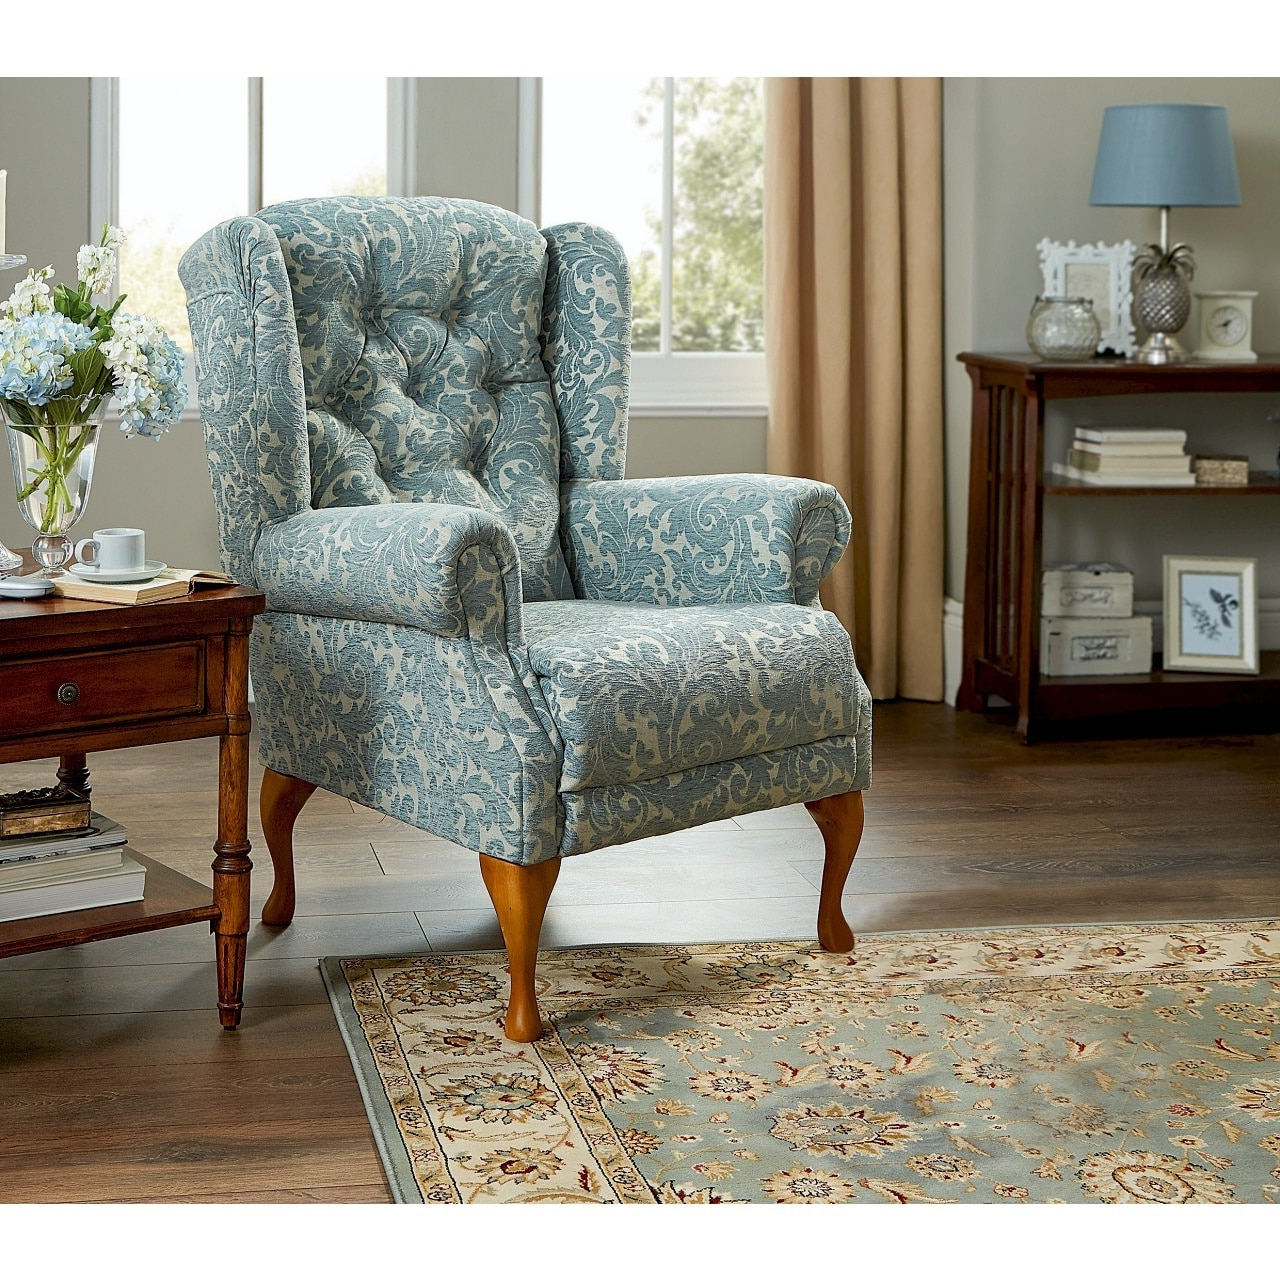 Famous 2 Piece Suite Offer – Bespoke Handmade Button Back Queen Anne Sofa And One  Armchair Regarding Portmeirion Armchairs (View 2 of 20)